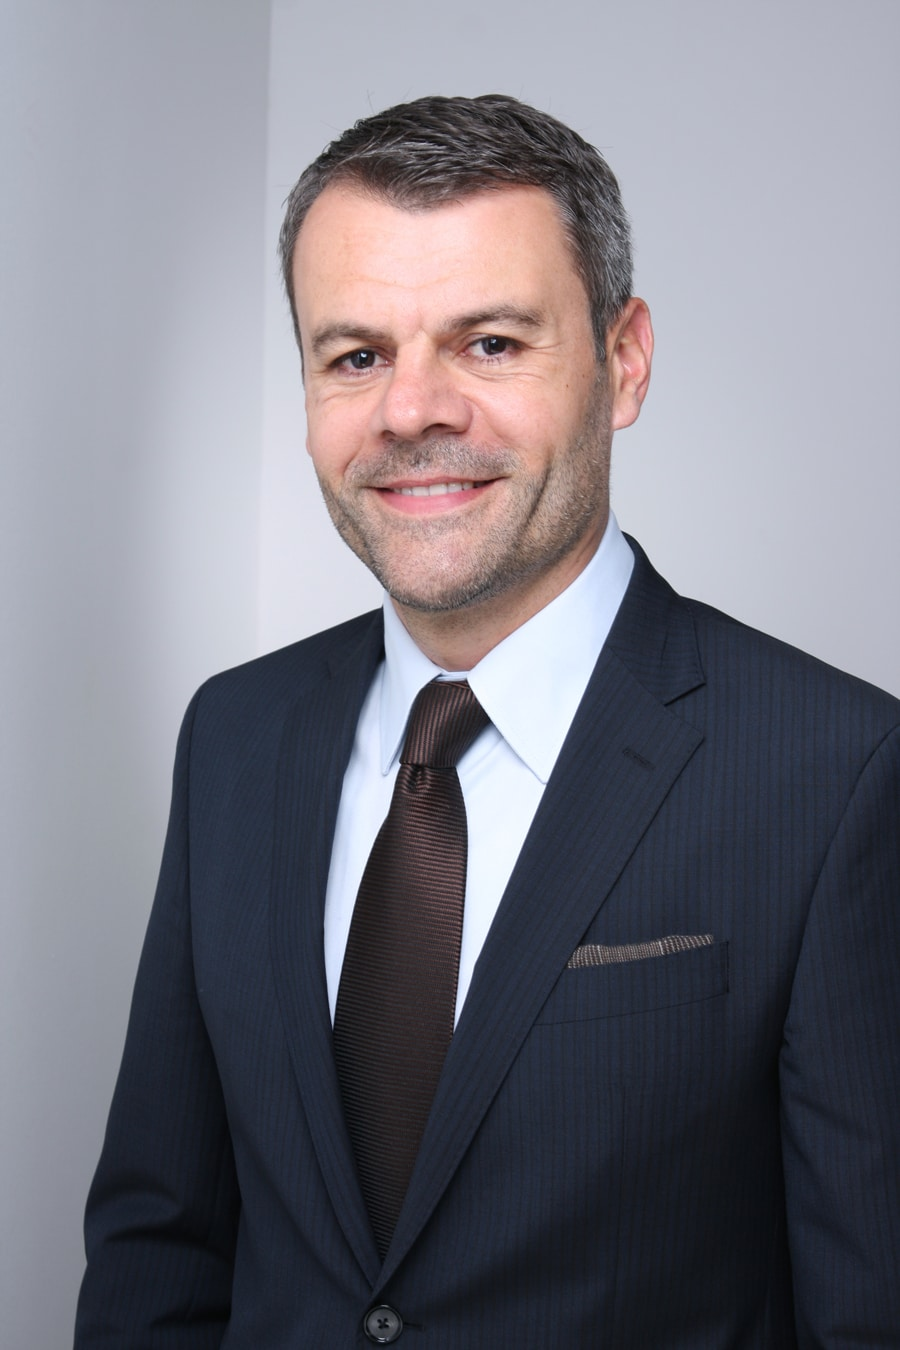 Lars Oehlmann, der neue General Manager Northern Europe bei Vacheron Constantin